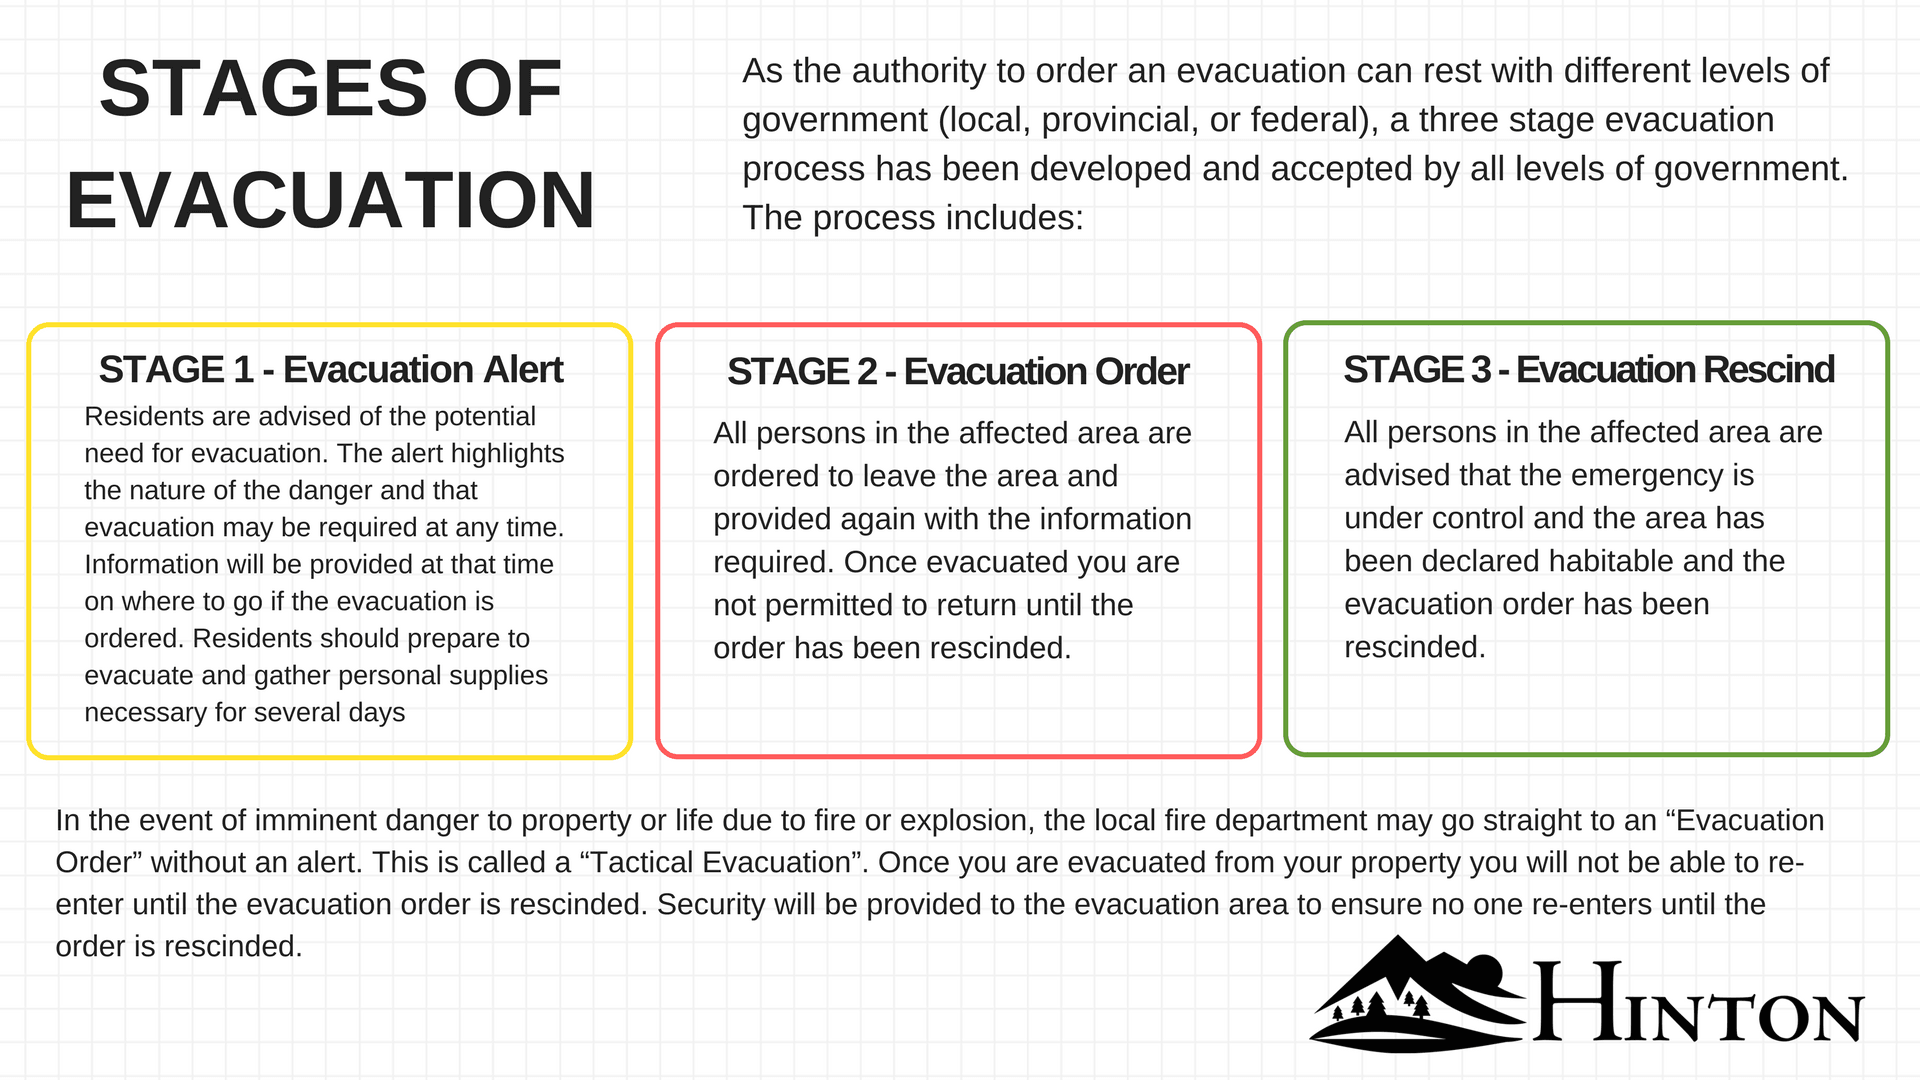 STAGE 1 - Evacuation Alert (1)